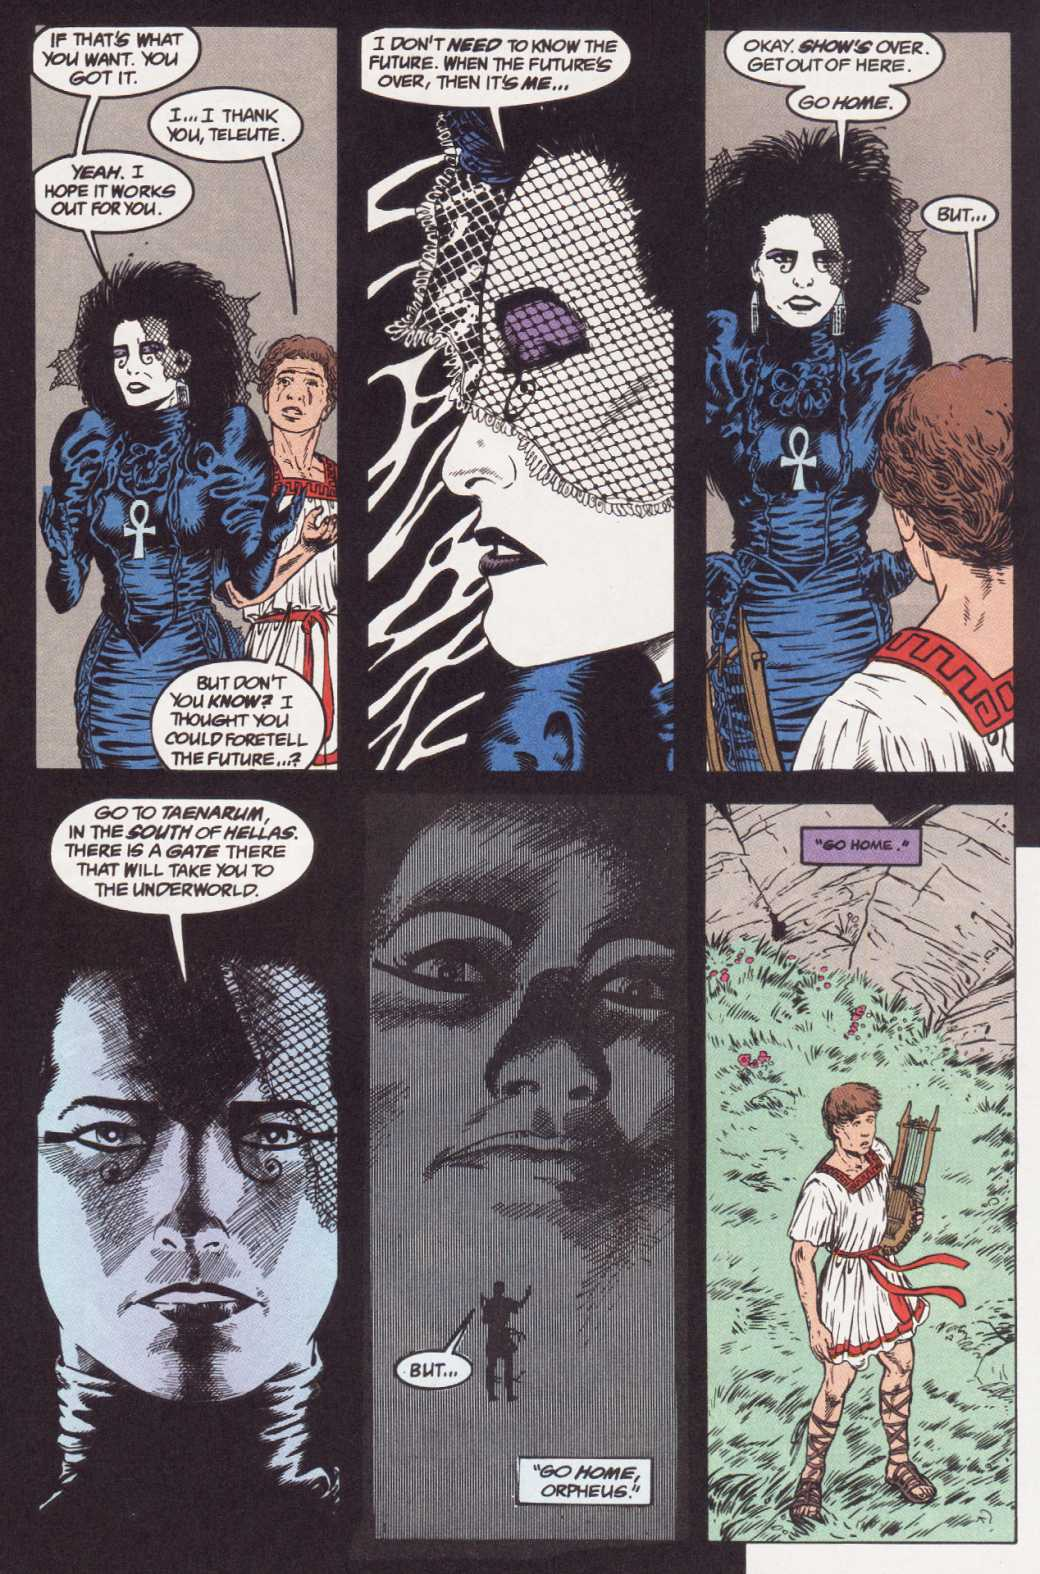 the story of sandman and the dreaming mind enkidu Sandman universe #1 (2018) from the mind of new york times #1 bestselling author neil gaiman comes a new world filled with dreams, nightmares and wonderful characters living together in a shared universe for a new story unlike anything we've ever seen before.